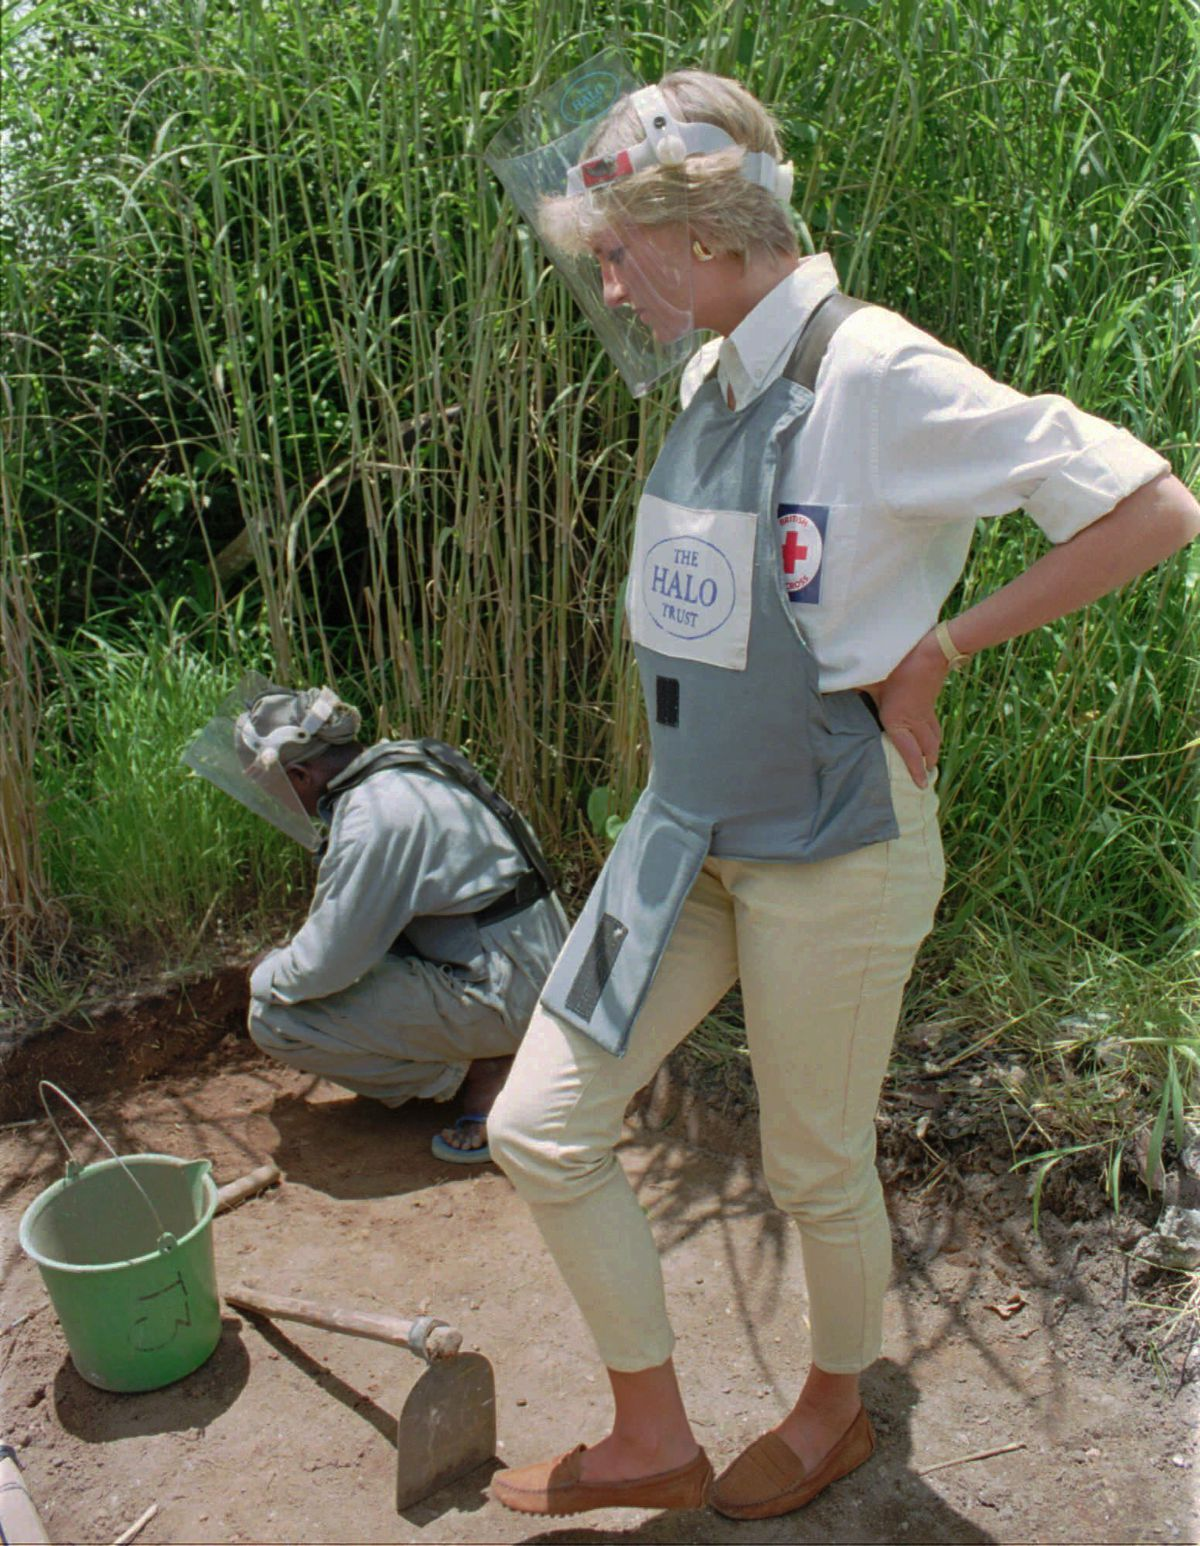 In this Jan. 15, 1997 file photo, Diana, Princess of Wales, wearing protective gear, watches a land-mine clearing demonstration in Huambo, central Angola, one of the most densely mined areas in the country.